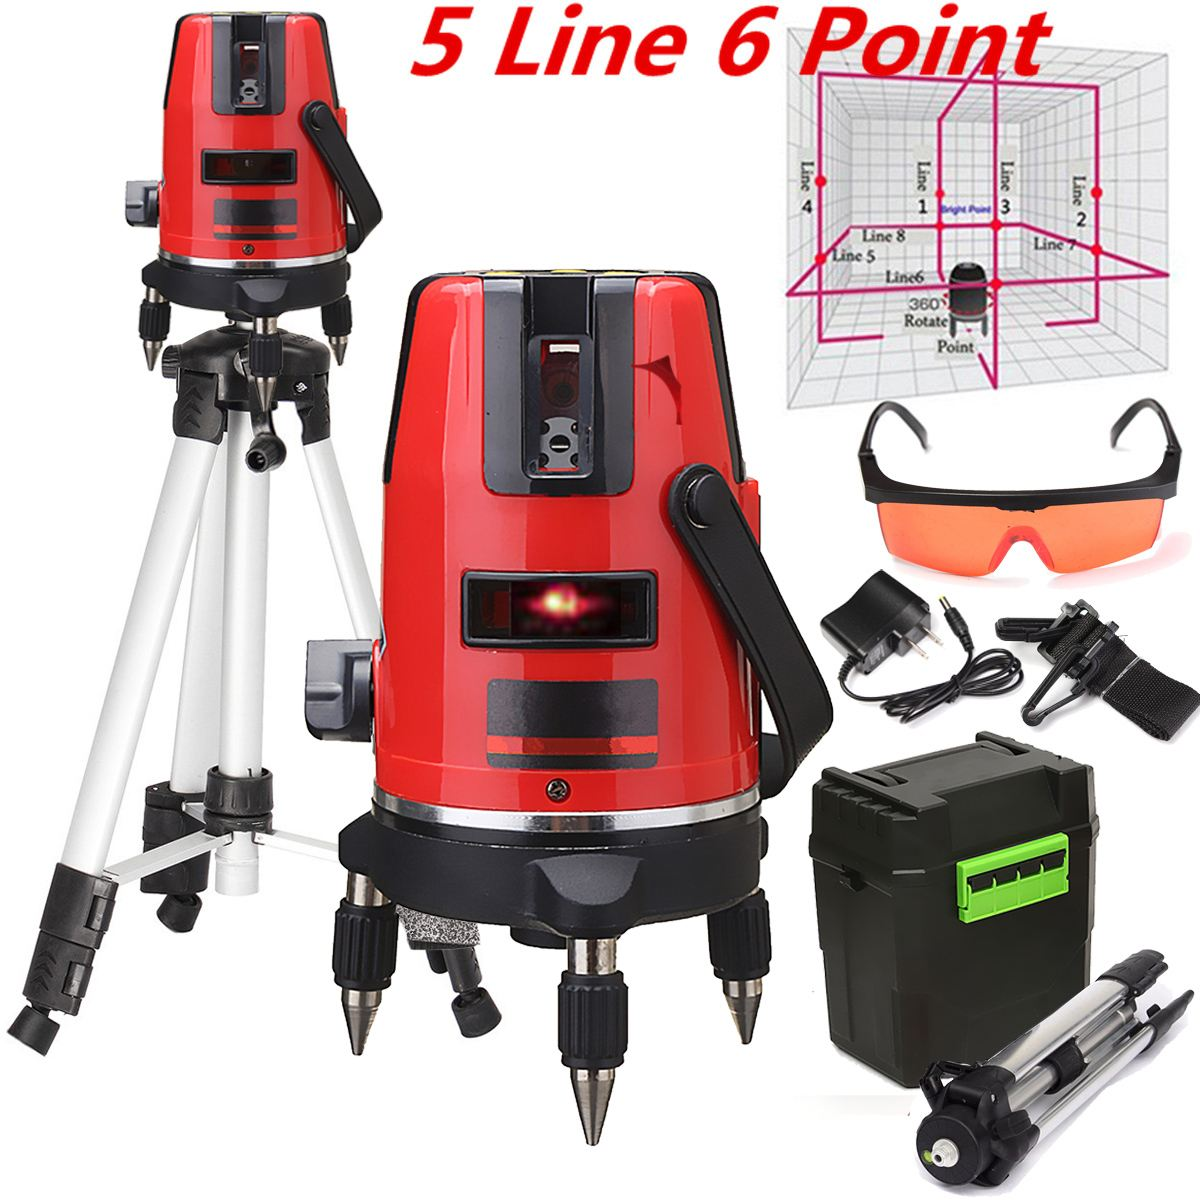 5 Line 6 Point Cross Line Red Automatic Self Leveling 360 degree Rotary Laser Level Meter Measure + Tripod hilda 360 degree self leveling cross laser level 1v1h red 2 line 1 point rotary horizontal vertical red laser levels cross laser